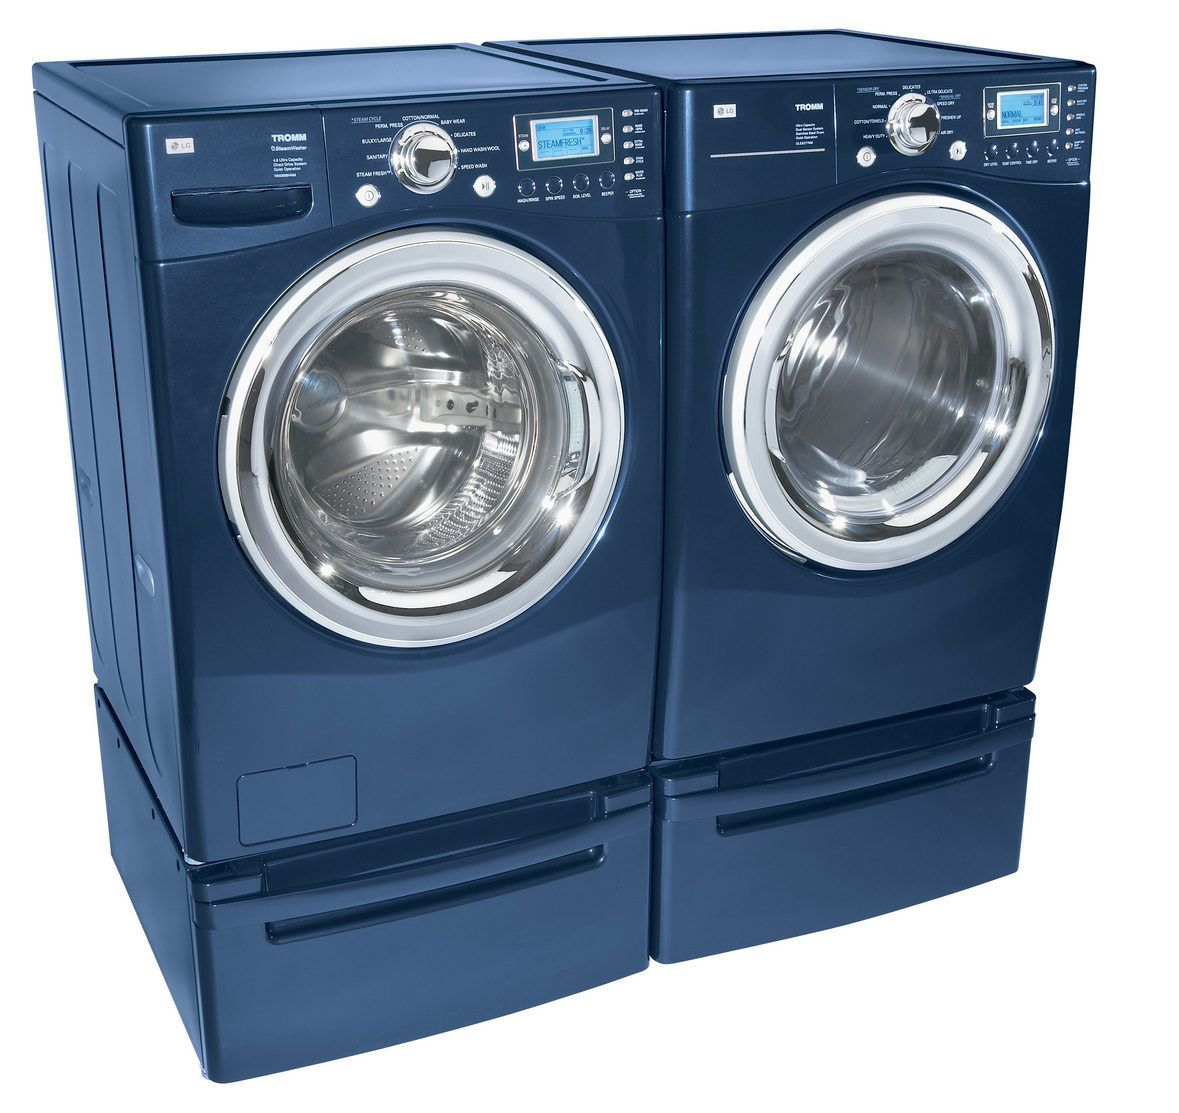 Optimus Prime Washer And Dryer Dave S Geeky Ideas Washer And Dryer Maytag Washing Machine Washing Machine